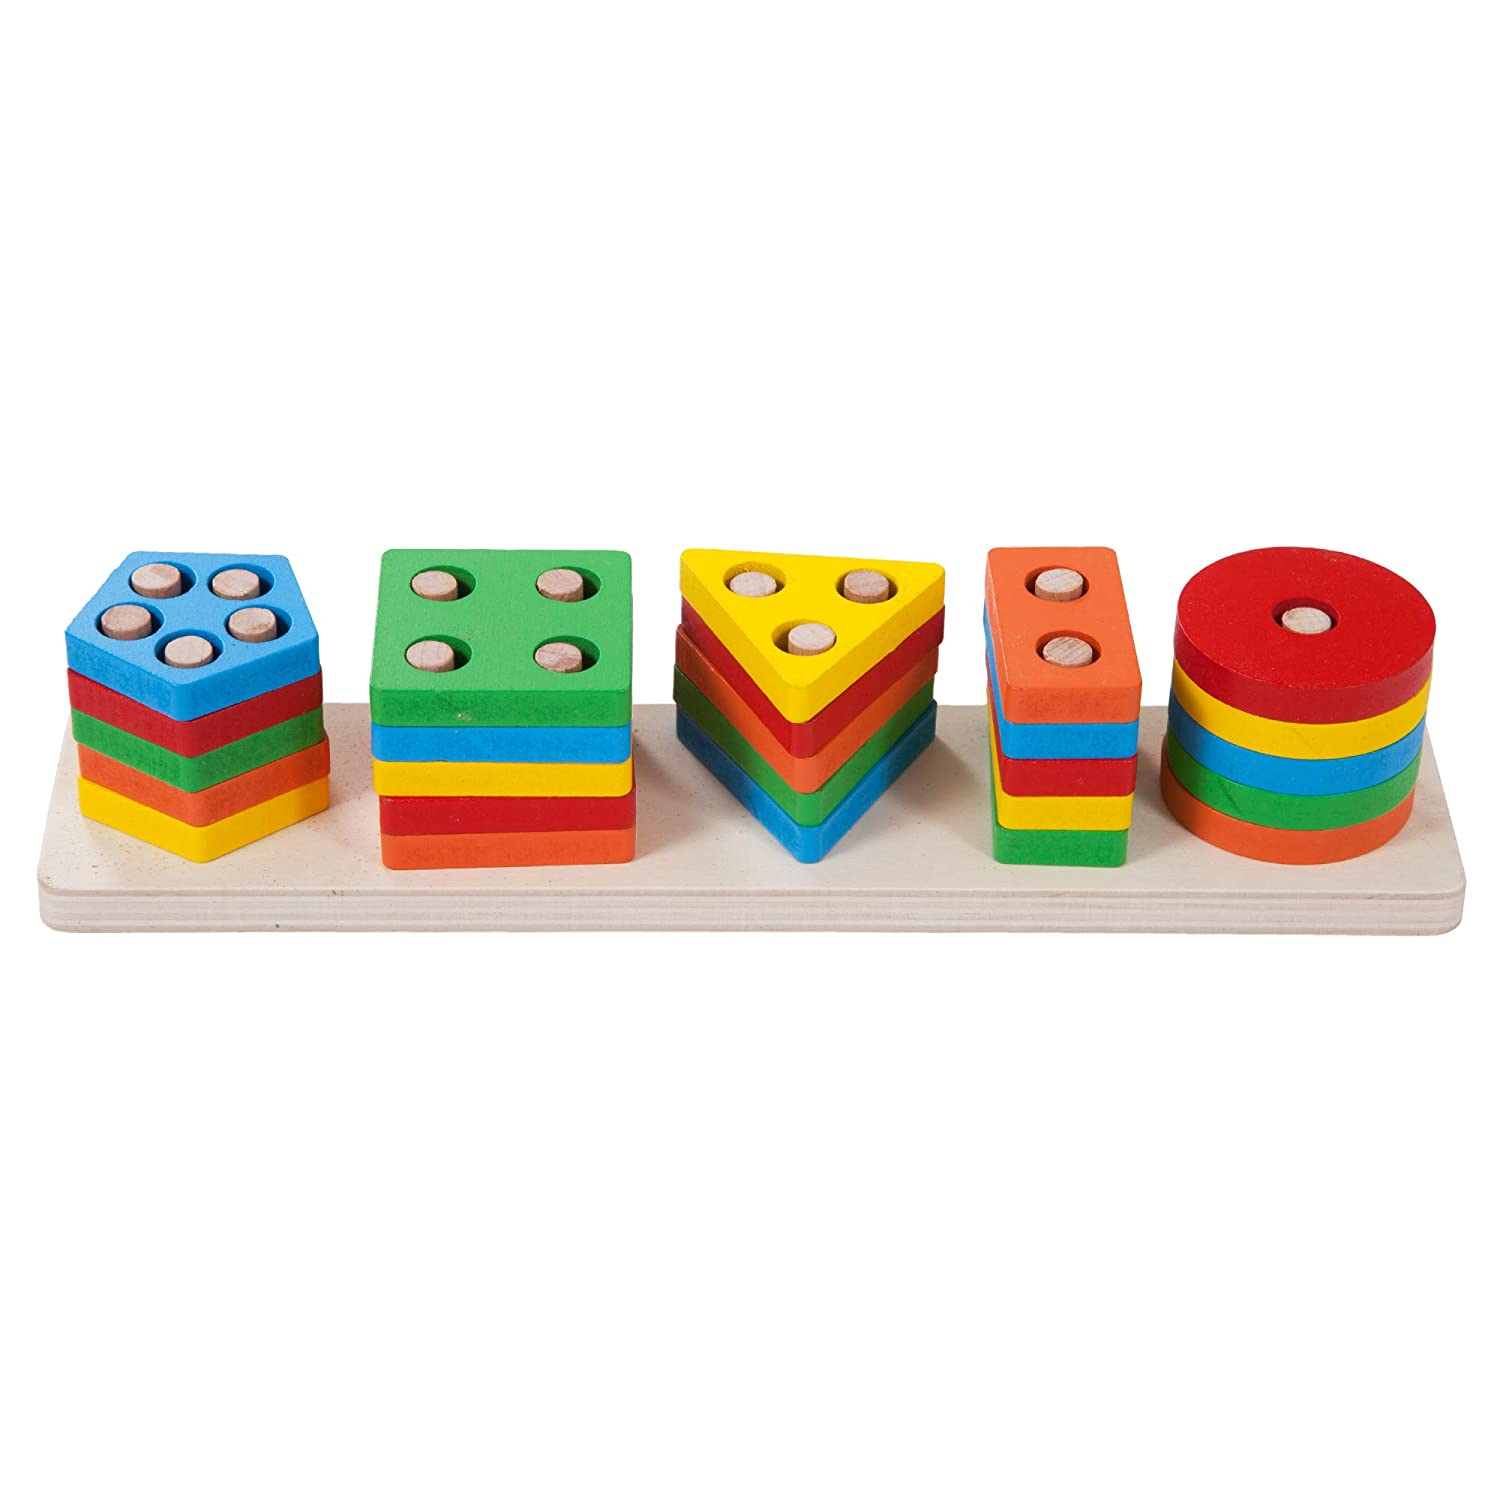 Smart Keiki Premium Wooden Educational Geometric Stack and Sort Activity Board for Toddlers and Kids Best Montessori Sensory Toy for Learning Shapes and Colors